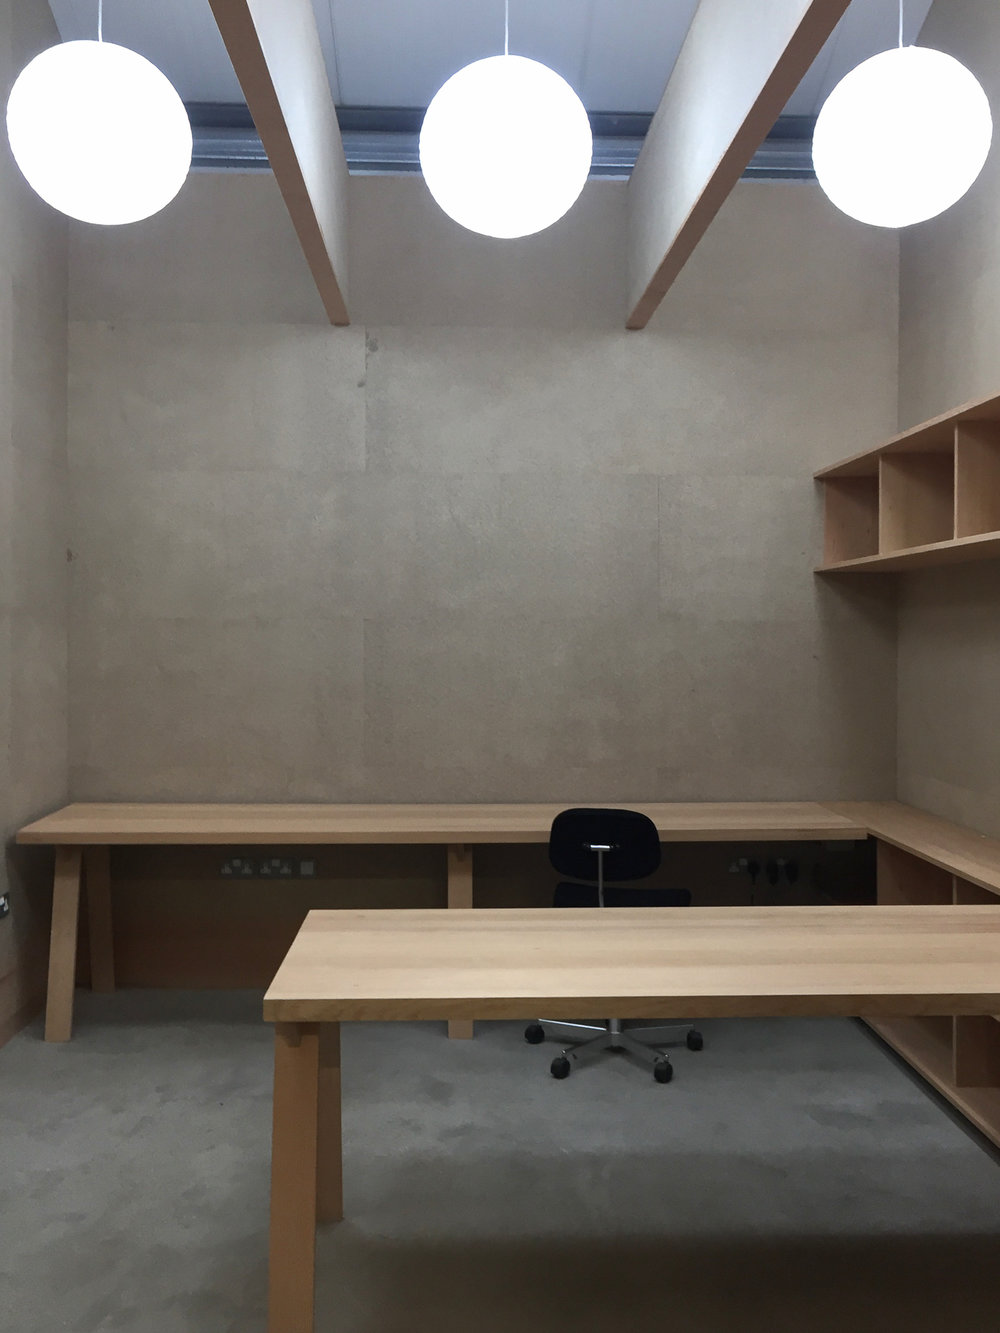 December 2016 The offices and showroom we have designed for Japanese tool suppler Niwaki in Wiltshire are nearing completion. Vertical grain Douglas Fir timber and T&G chipboard panels.